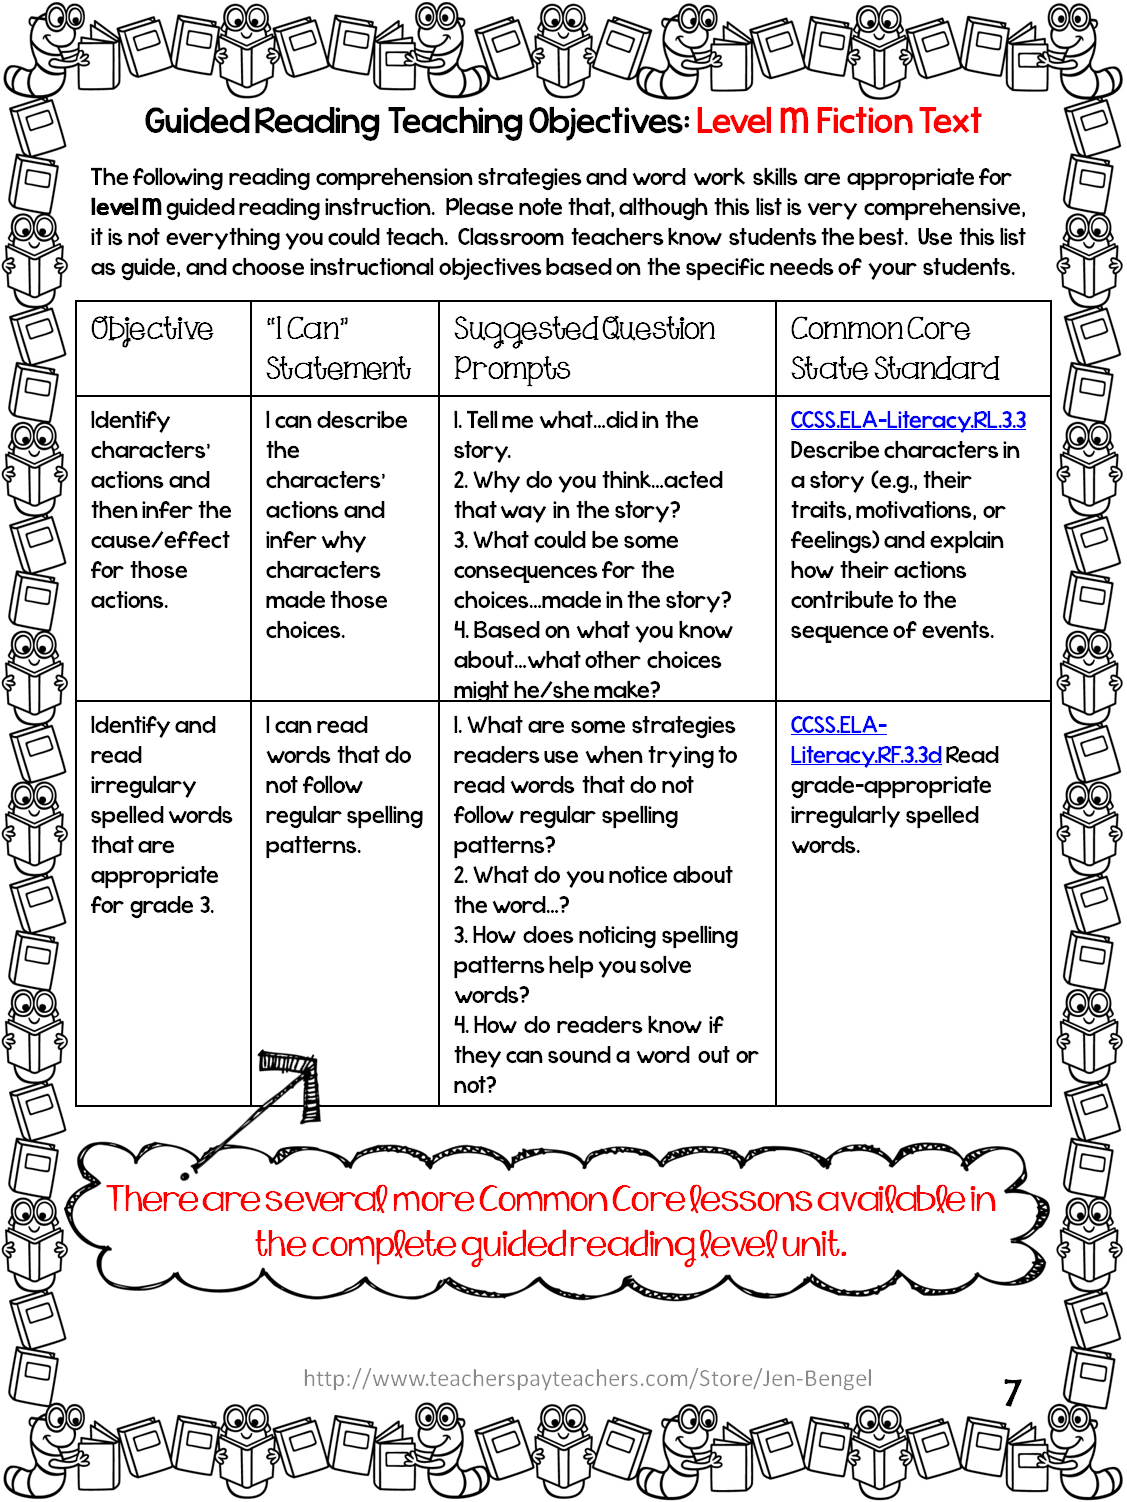 http://www.teacherspayteachers.com/Product/FreebieGuided-Reading-Lessons-and-Printable-Assessments-Grade-3-1127545